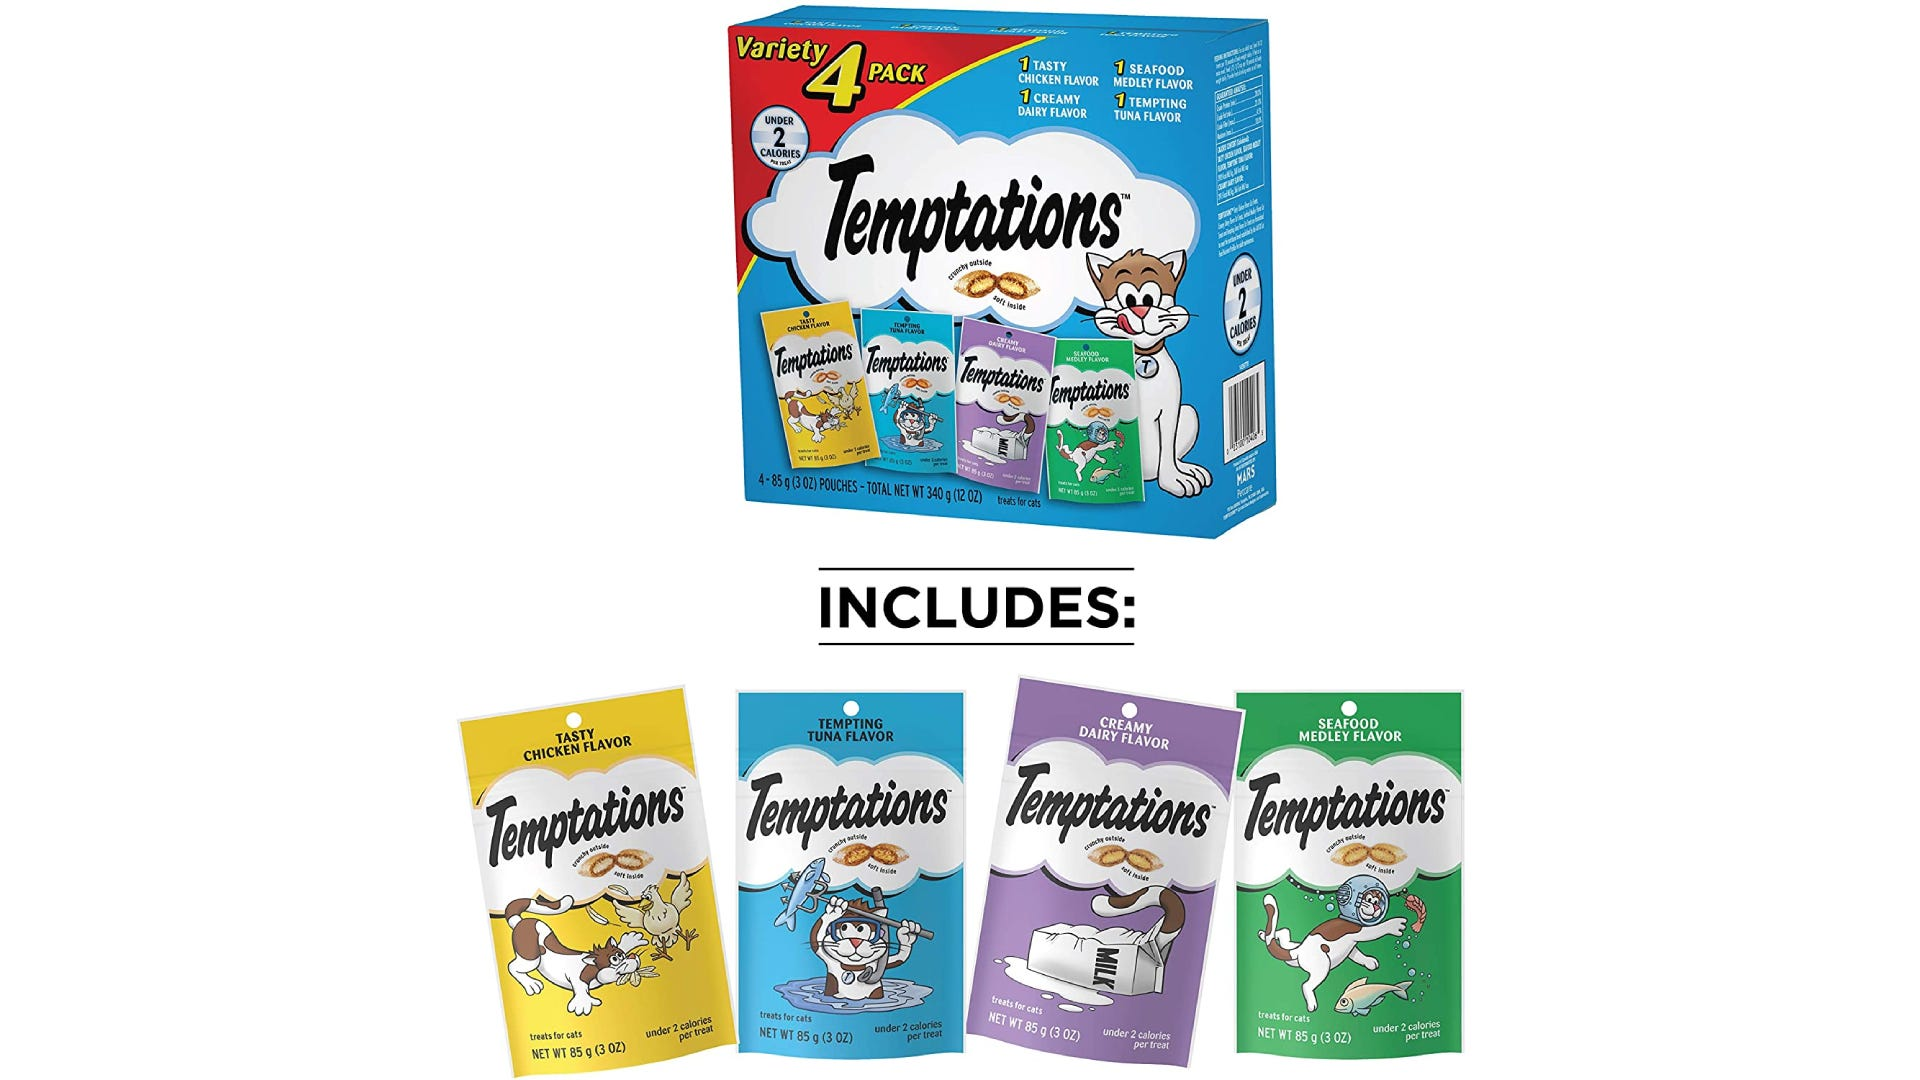 a box of Temptations cat treats with four different flavors in separate pouches